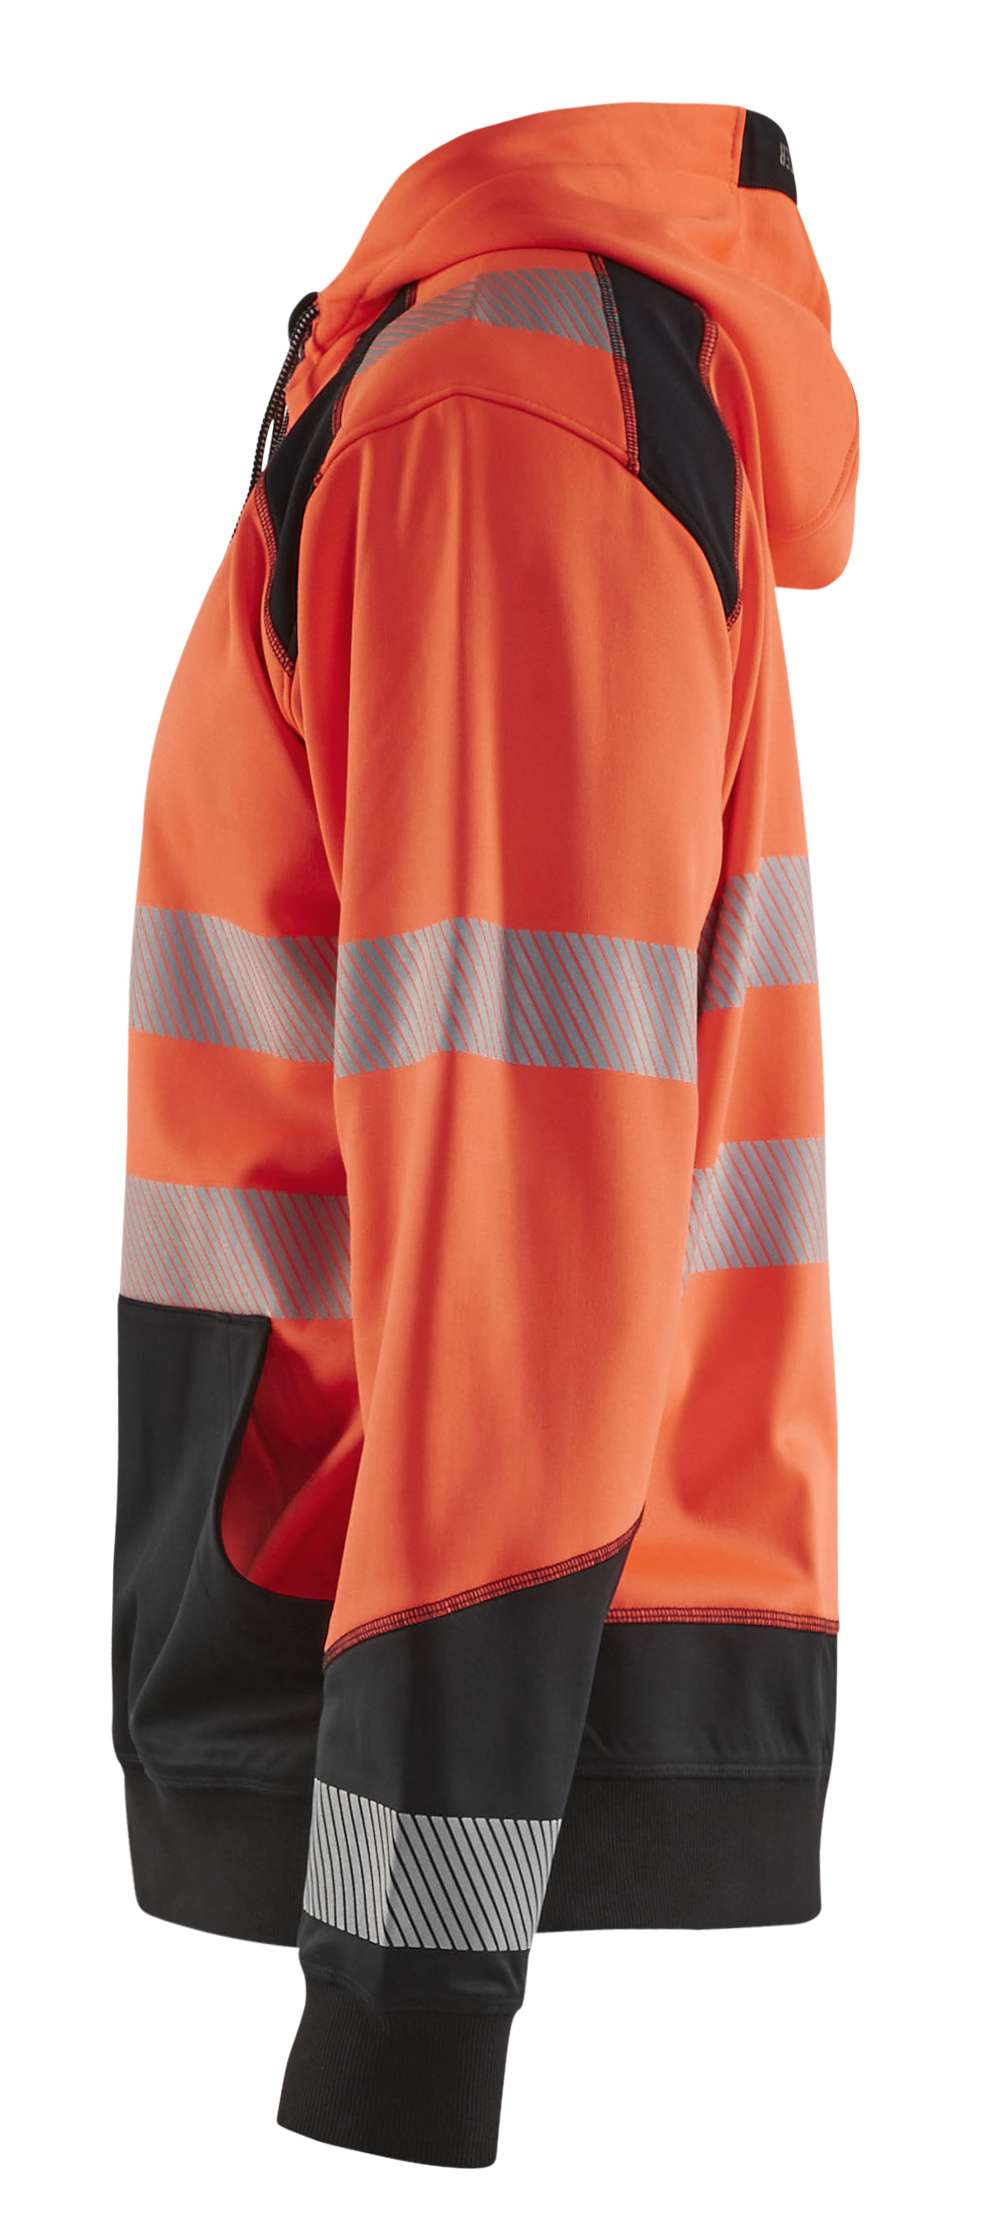 Blaklader Hooded sweatvesten 35462528 High Vis fluo rood-zwart(5599)